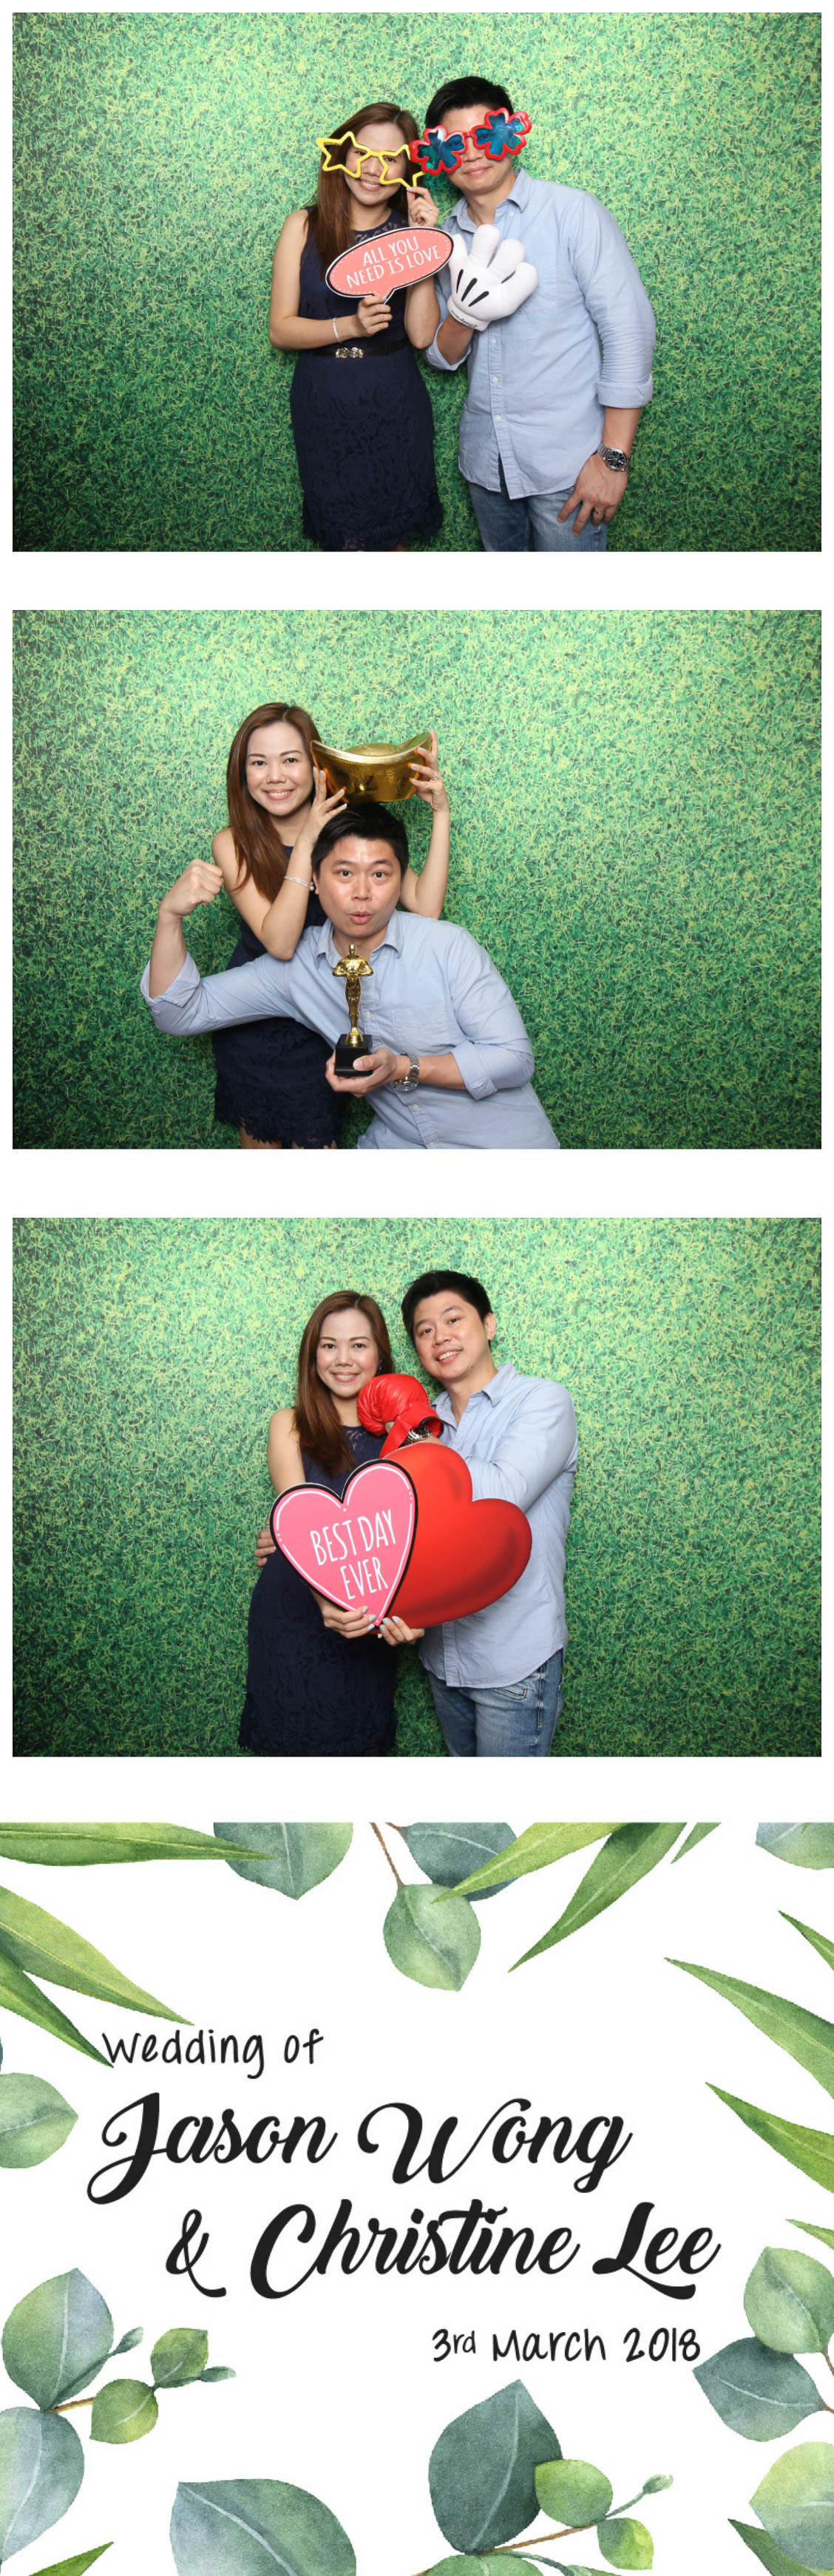 Photobooth 0302-43